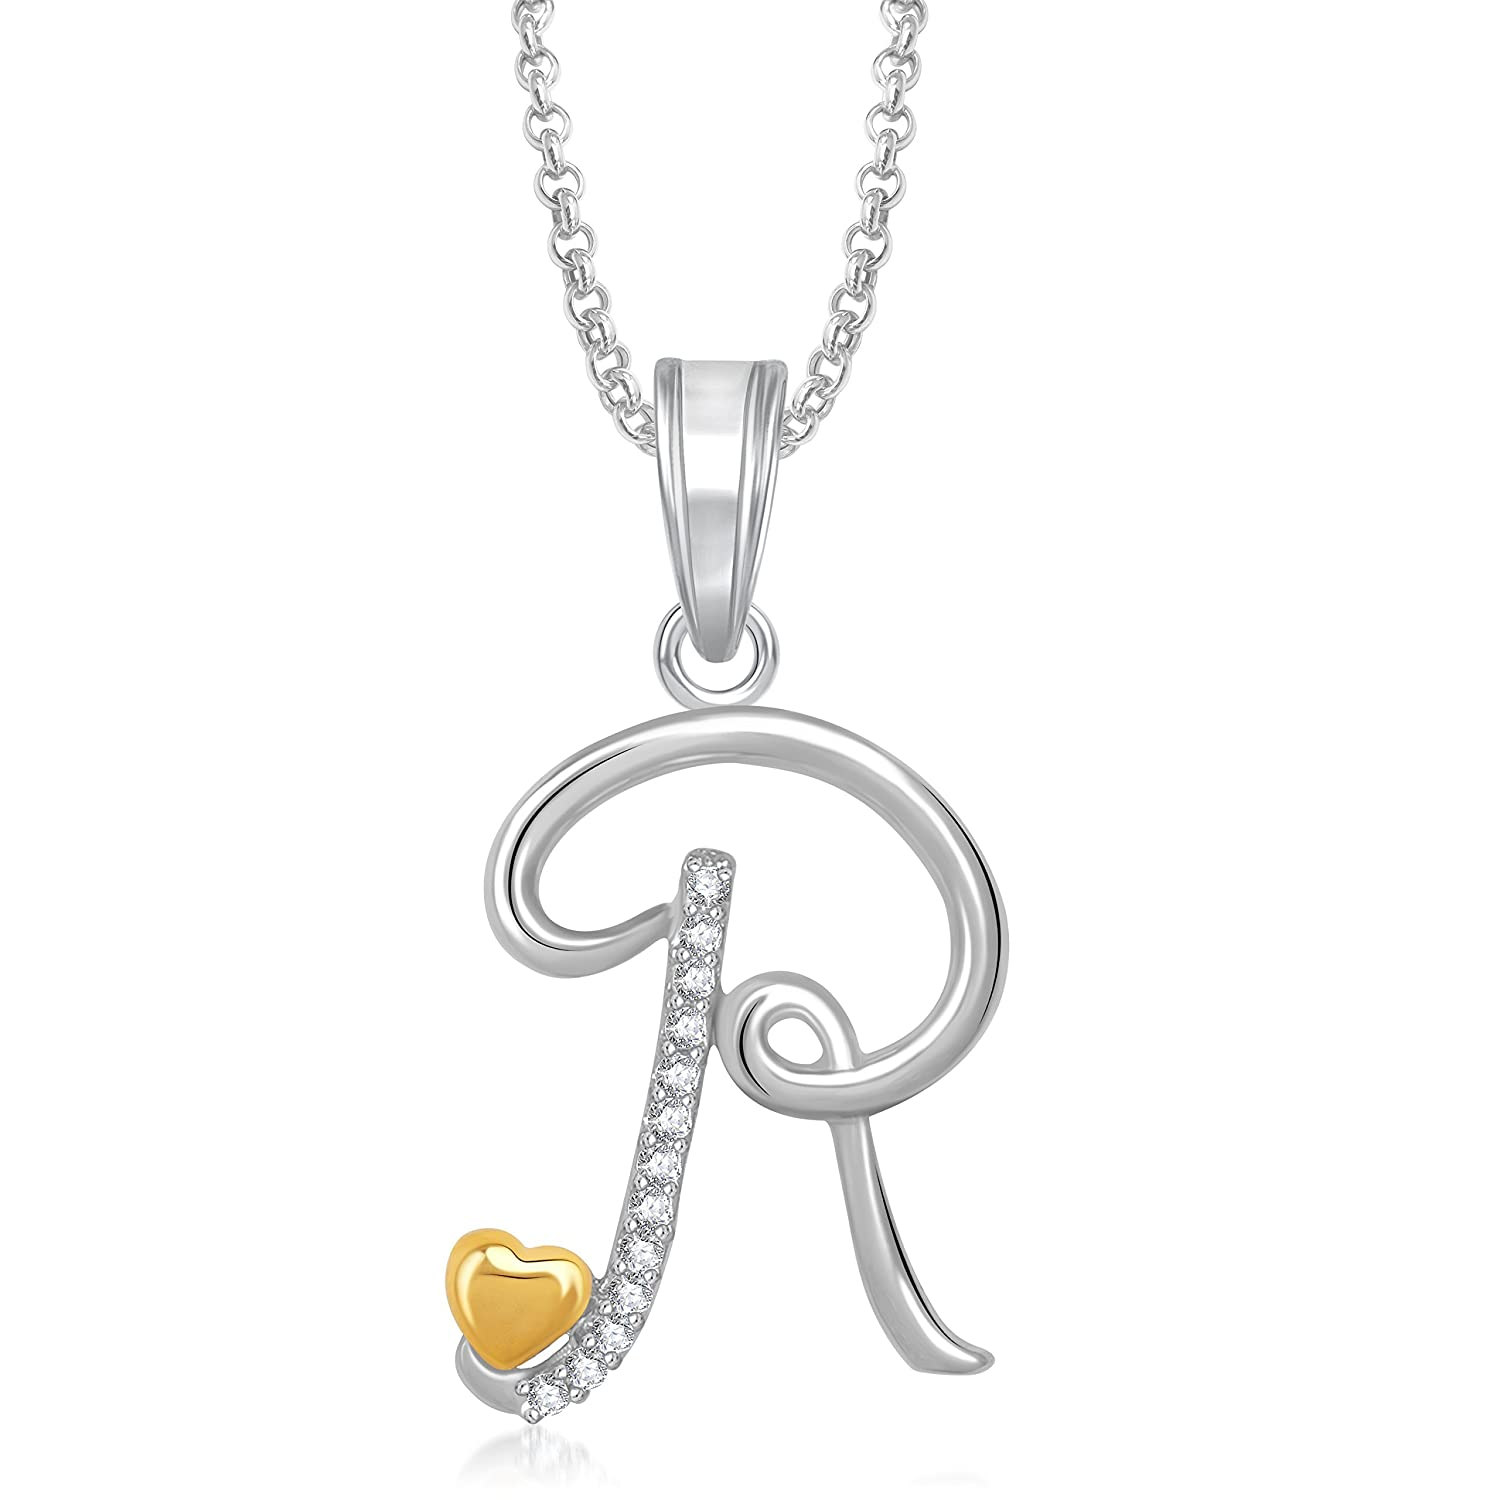 online up love hope charms silver encouragement never necklace jewelry nerver trust lockets give product men gold pendant necklaces dream women plated store message girls